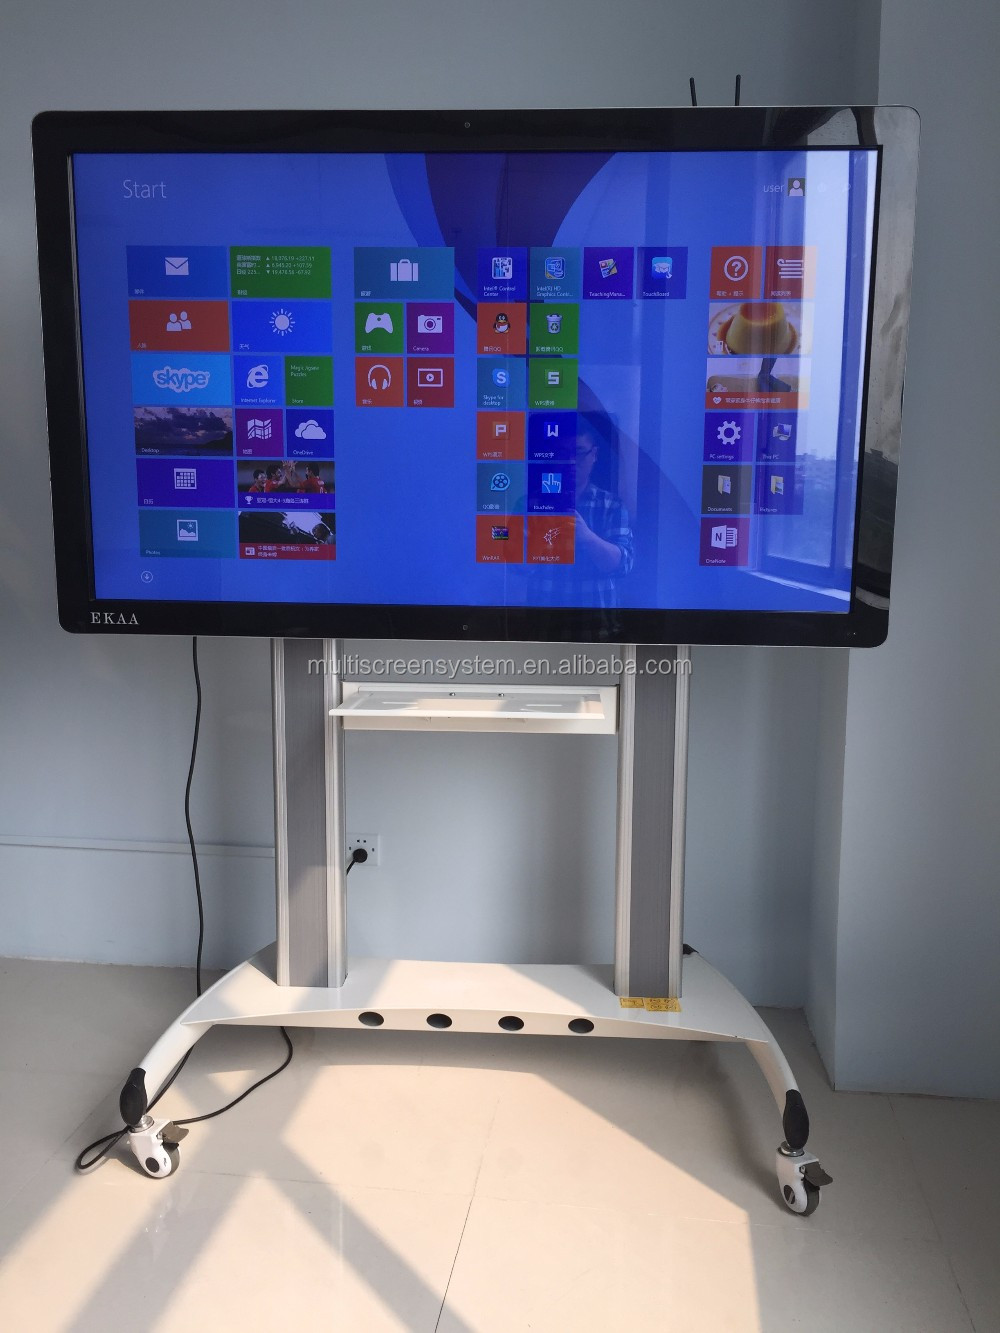 EKAA 98inch School Office Presentation All in One Touch Screen PC Smart Board